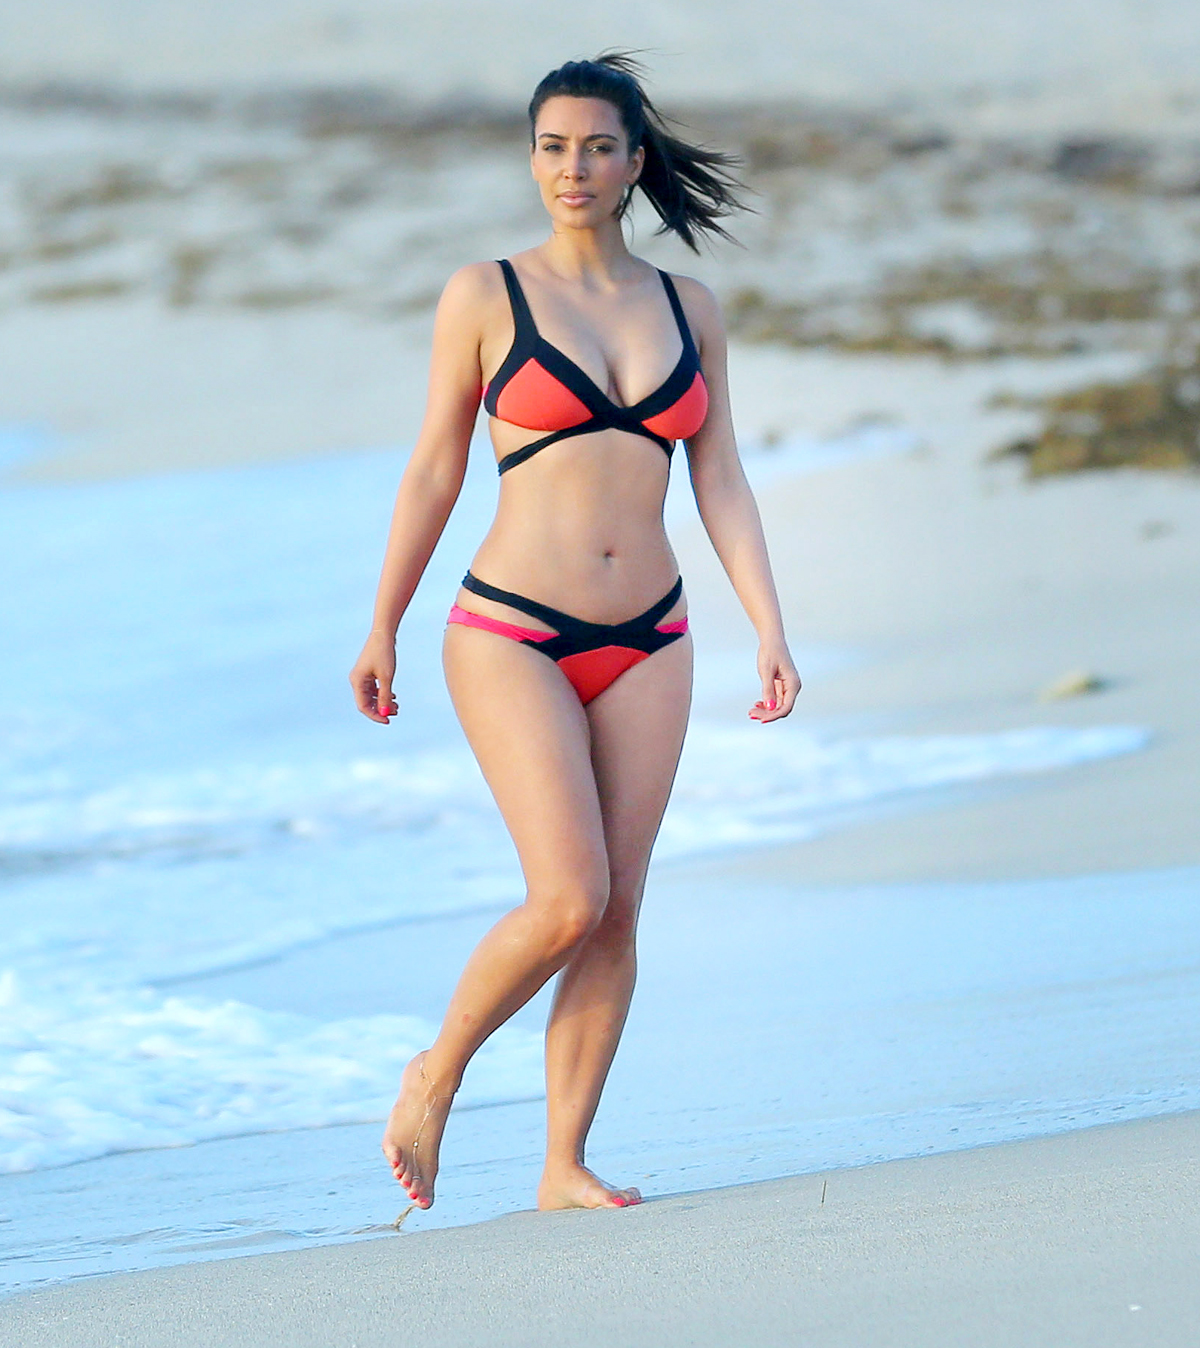 EXCLUSIVE: Kim Kardashian wears a colorful bikini on Miami beach with Jonathan Cheban! Photos taken on July 21st, 2012